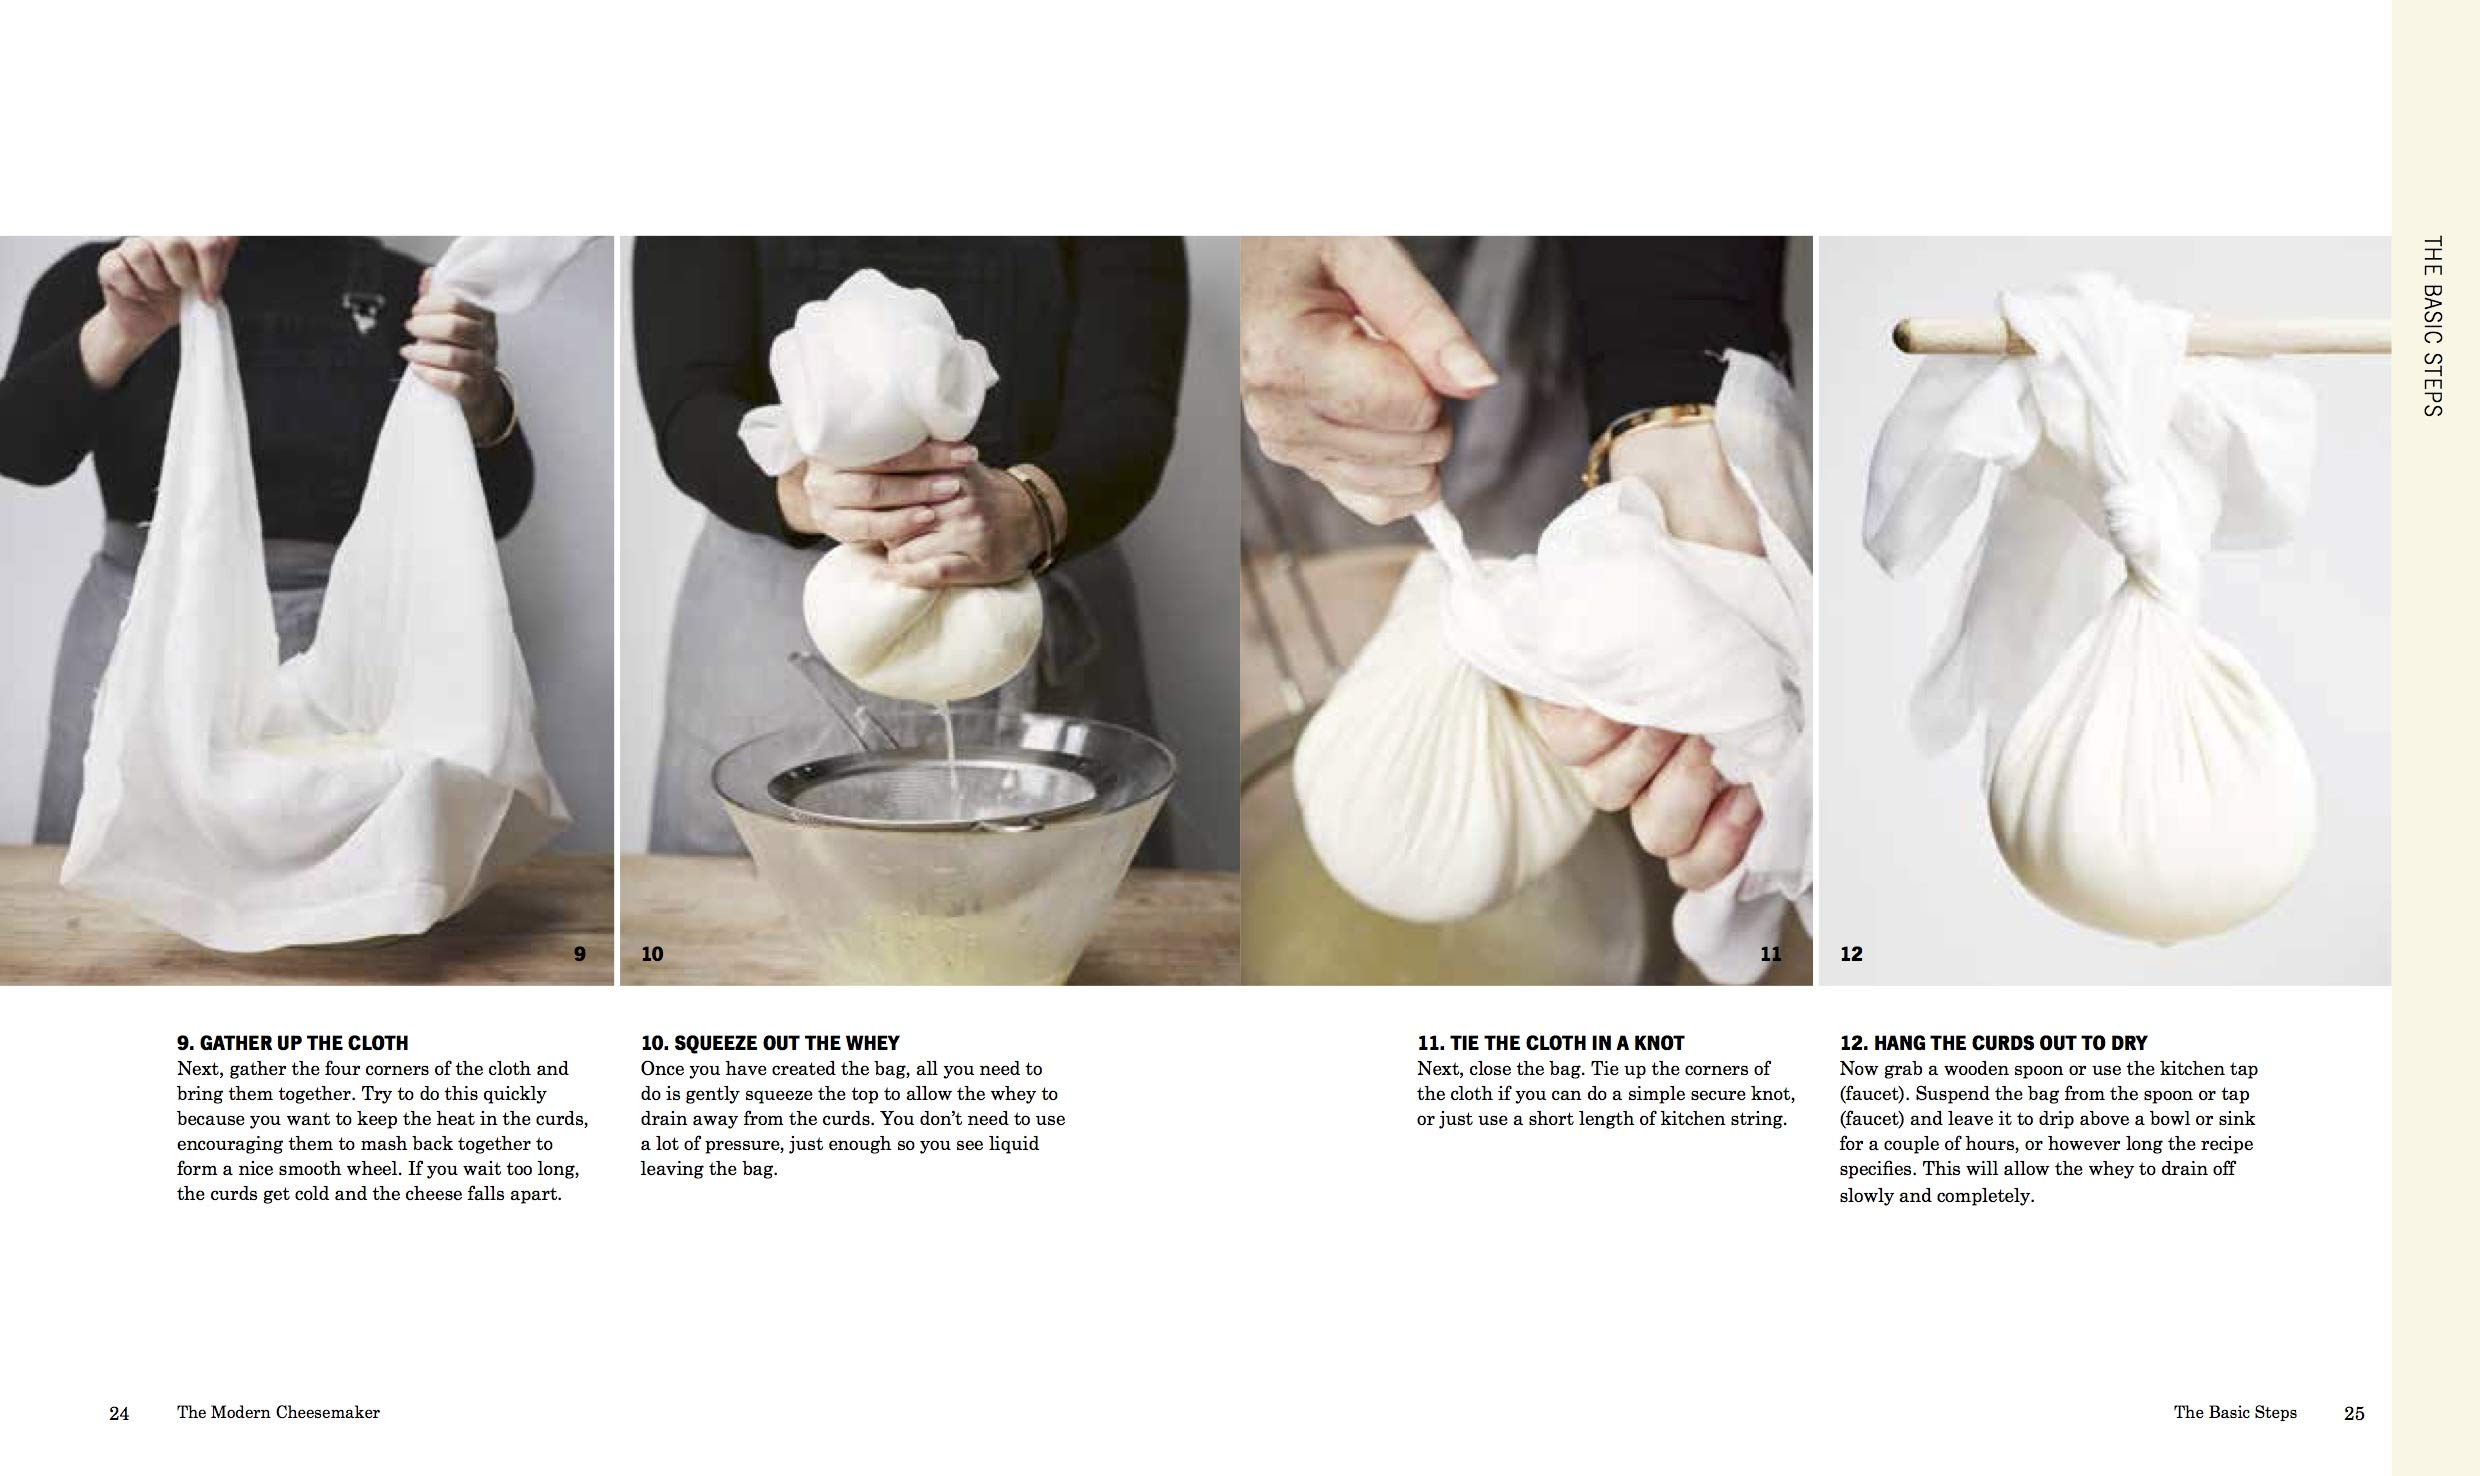 The Modern Cheesemaker, Making and Cooking With Cheeses at